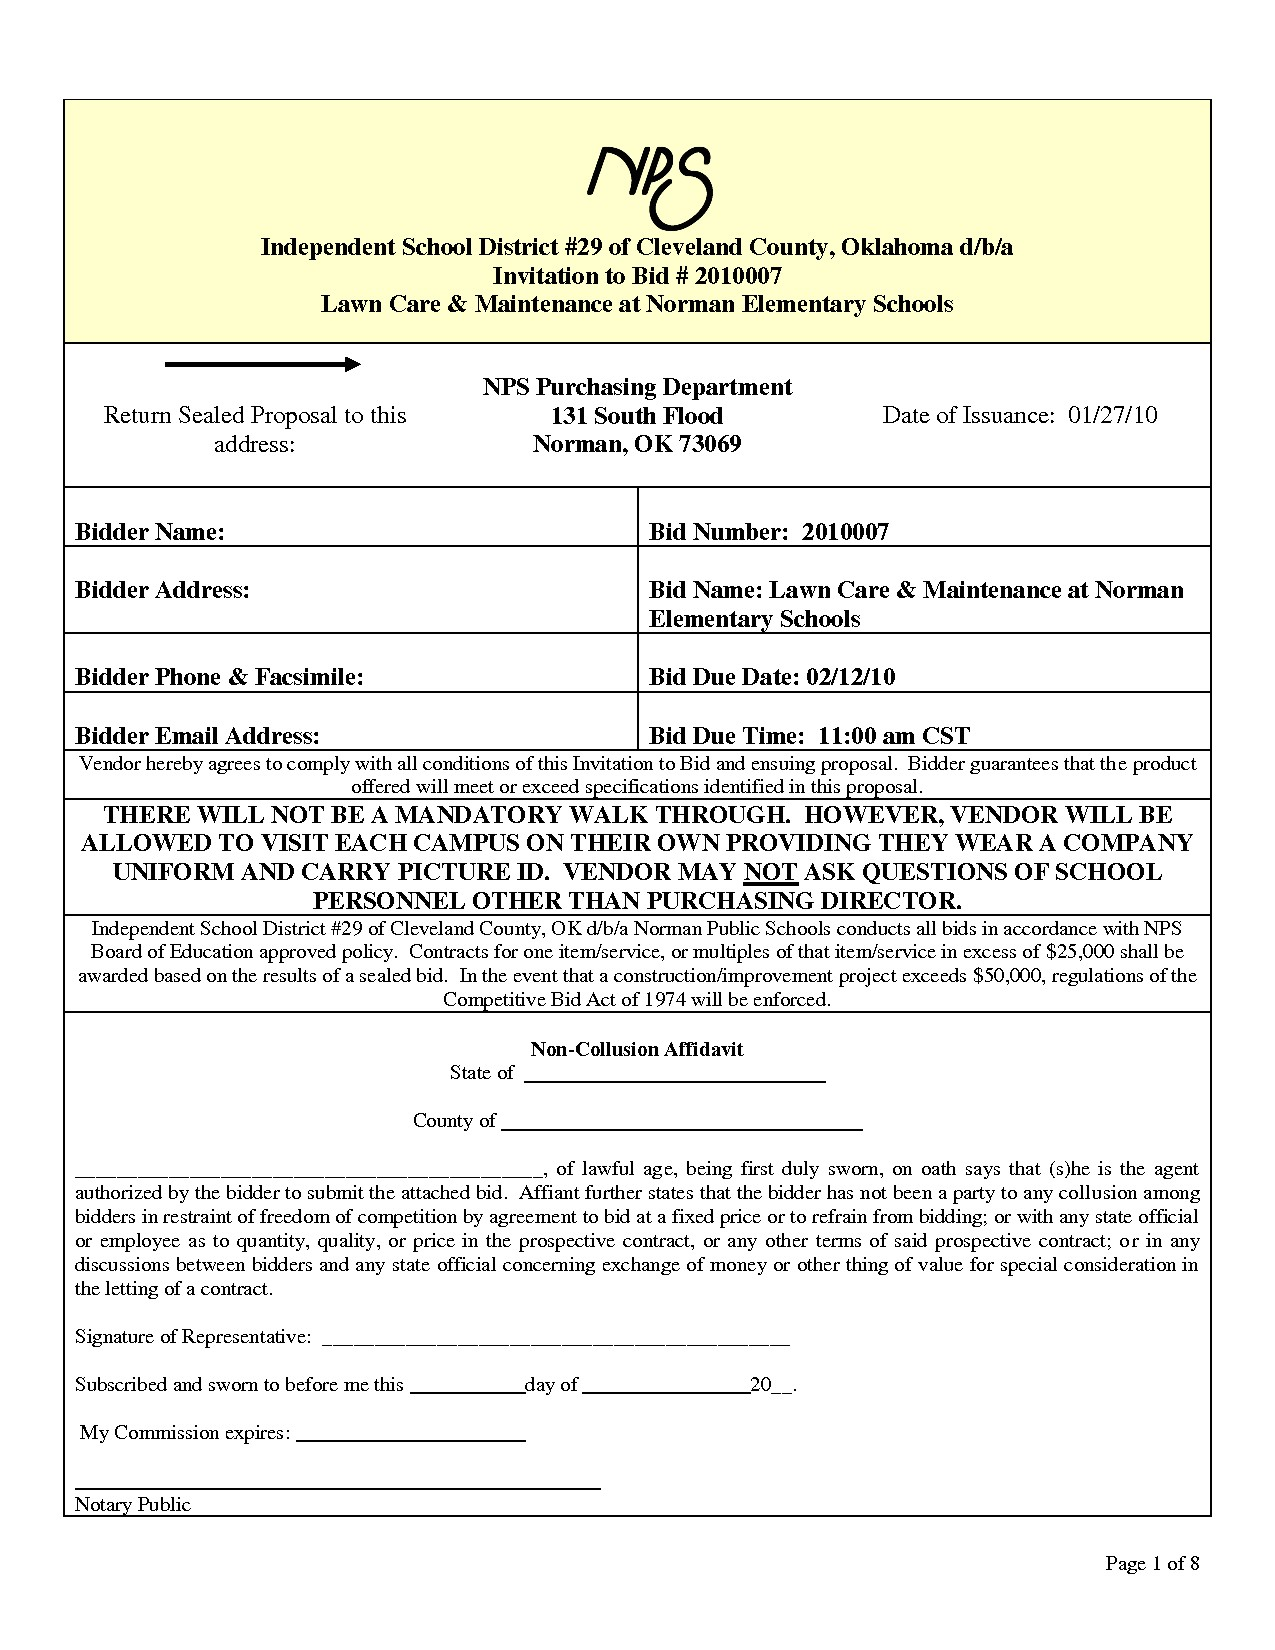 post service proposal forms 346596